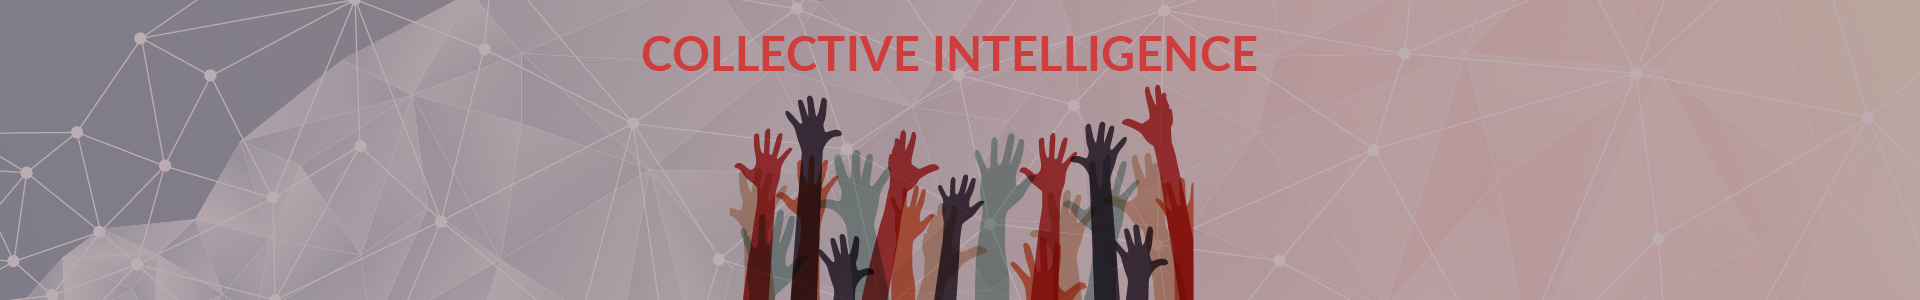 Empowering people to find solutions to complex challenges through Collective Intelligence - Banner